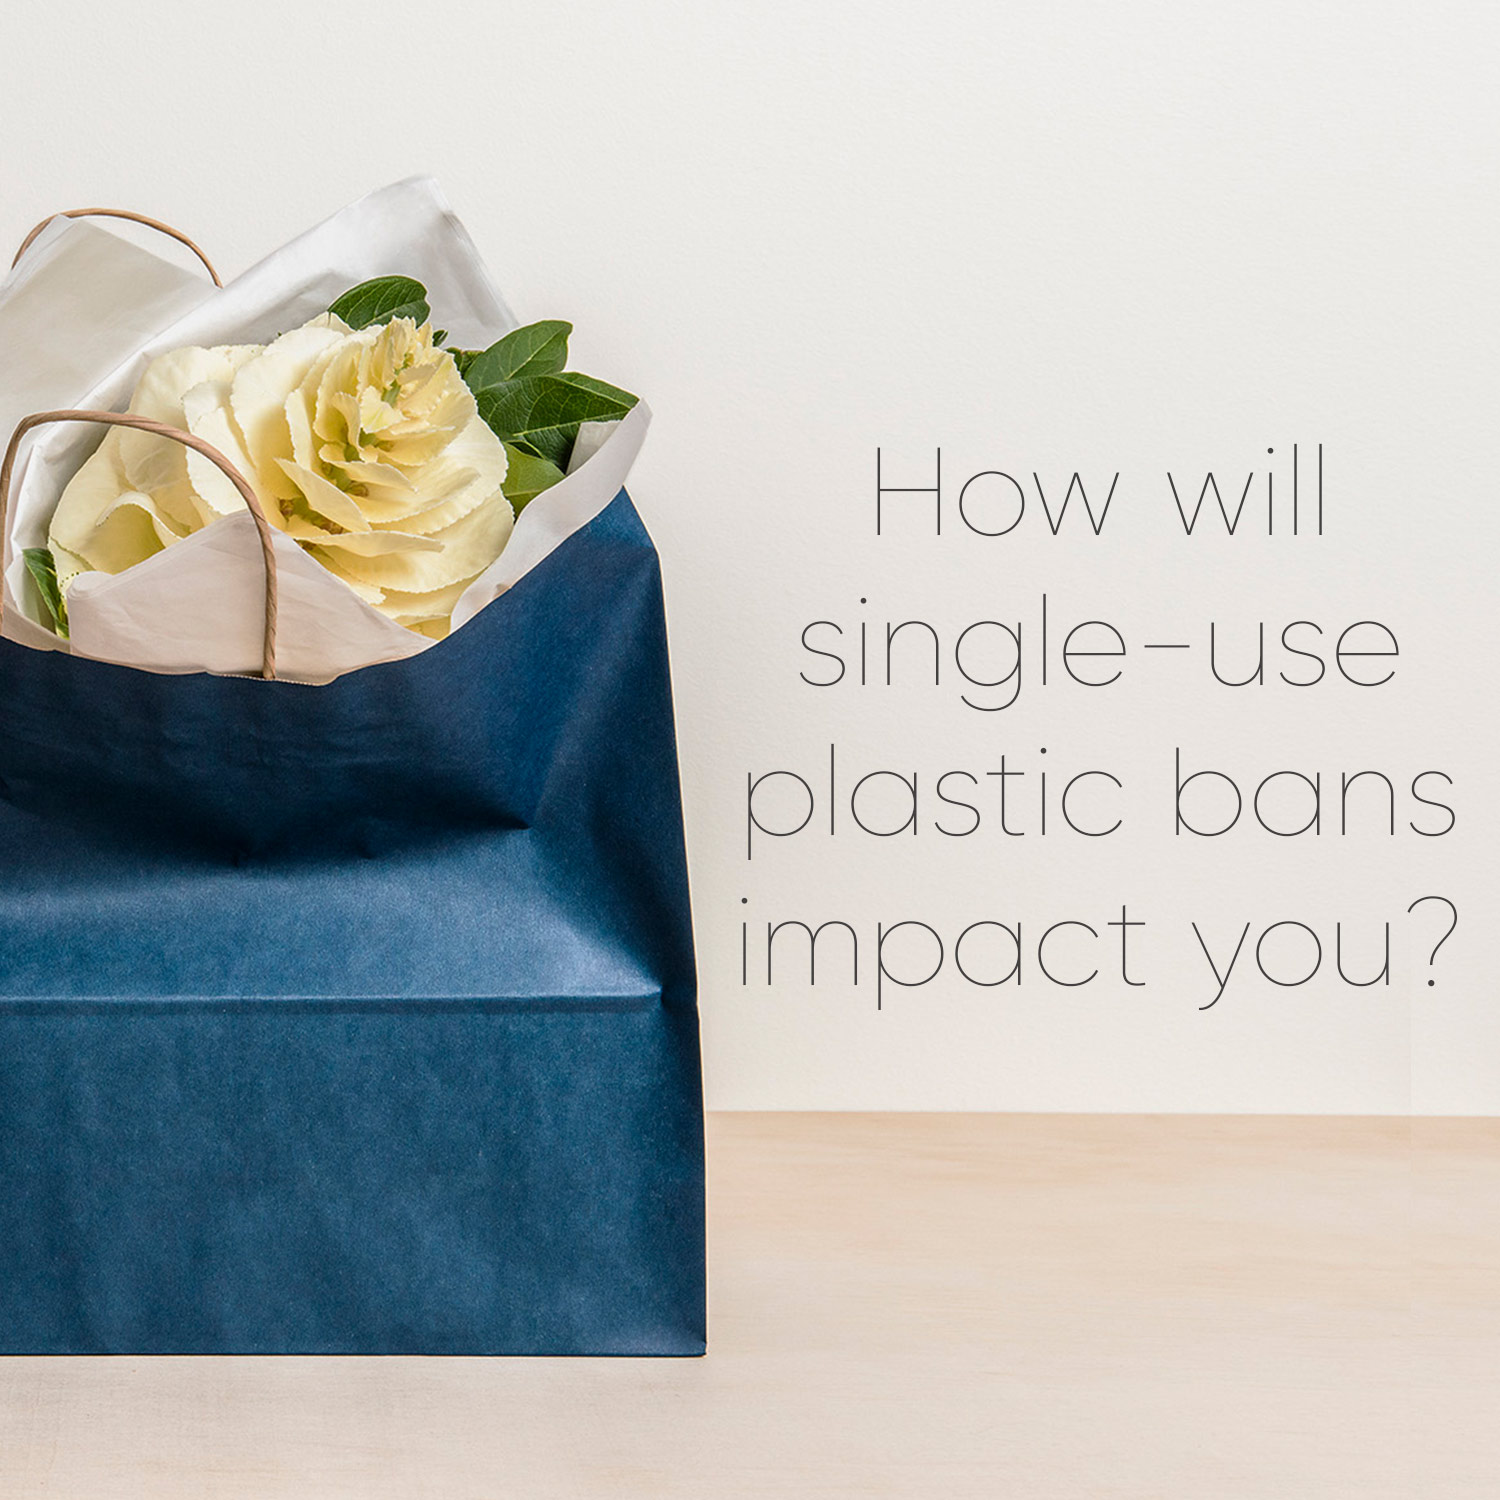 Image with text how will single use plastic bans impact you